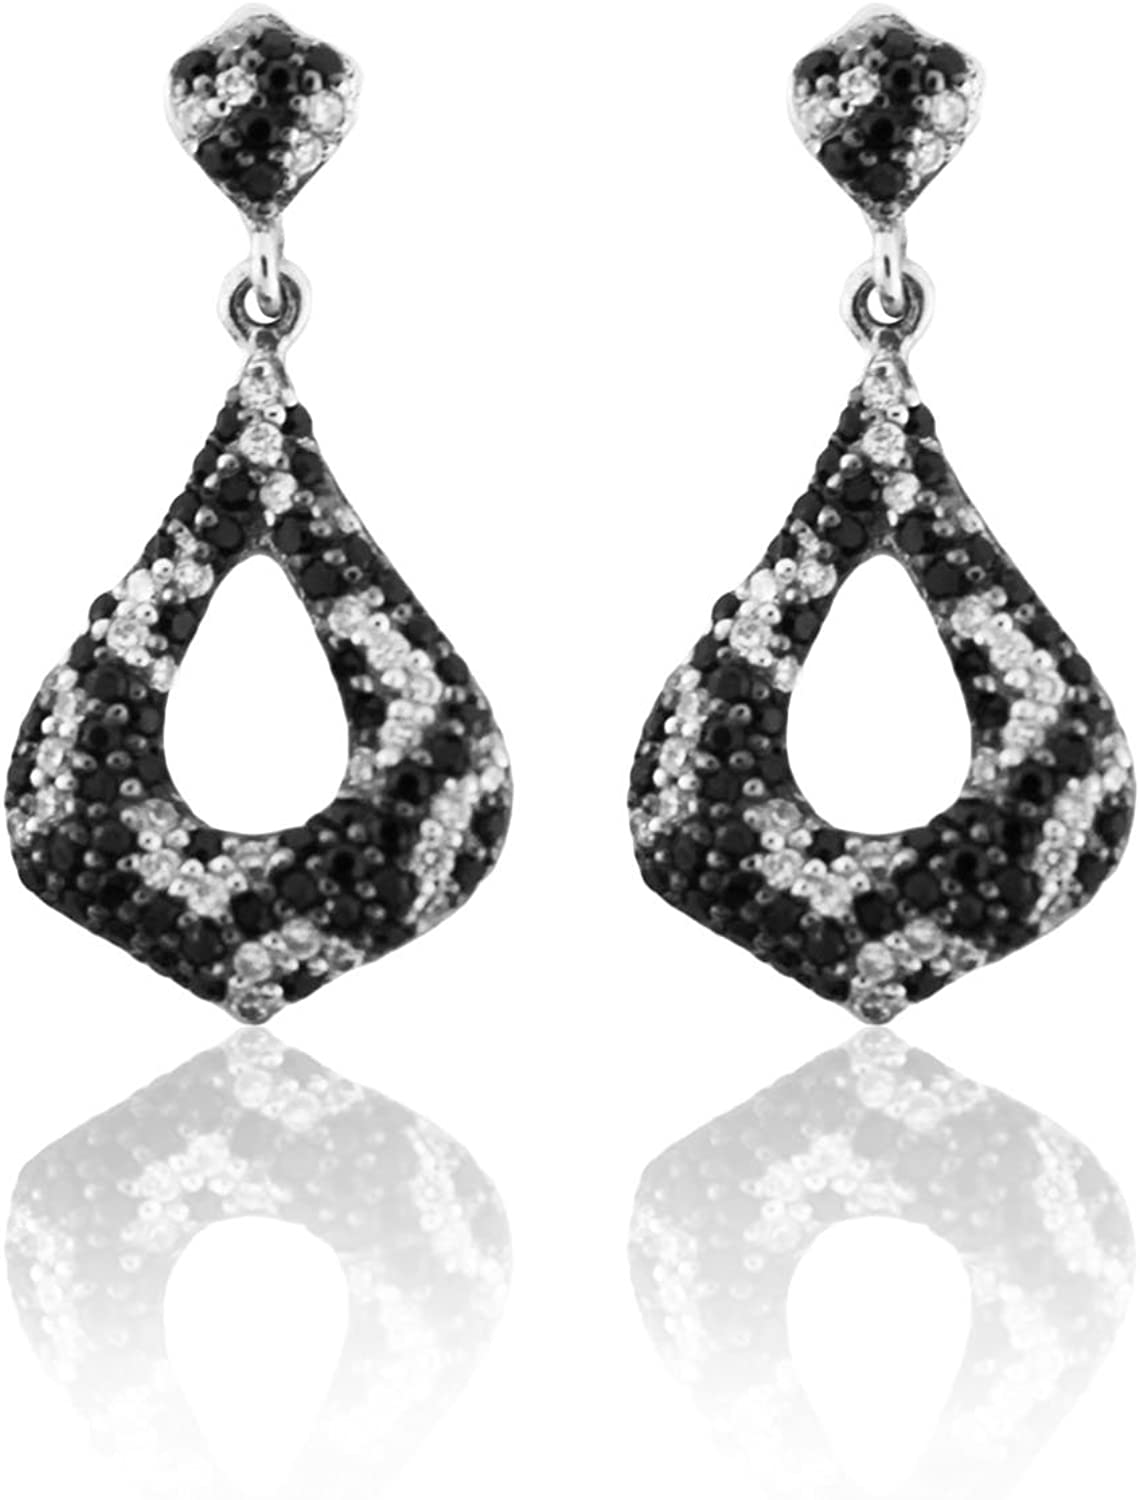 .75 Carats Sterling Silver Earrings W/Black & White Cubic Zirconia